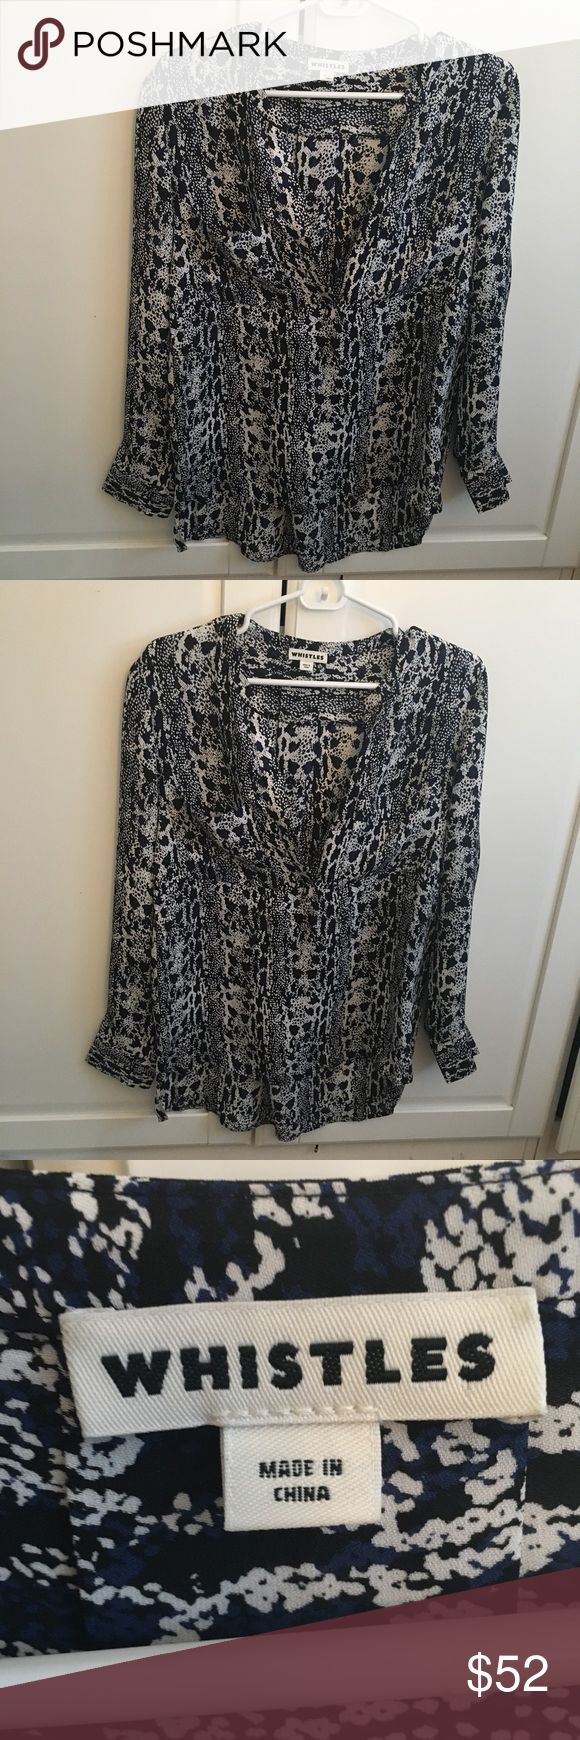 Whistles Blue and White Animal Print Blouse Size 2 Like new! Only worn once! Whistles Tops Blouses